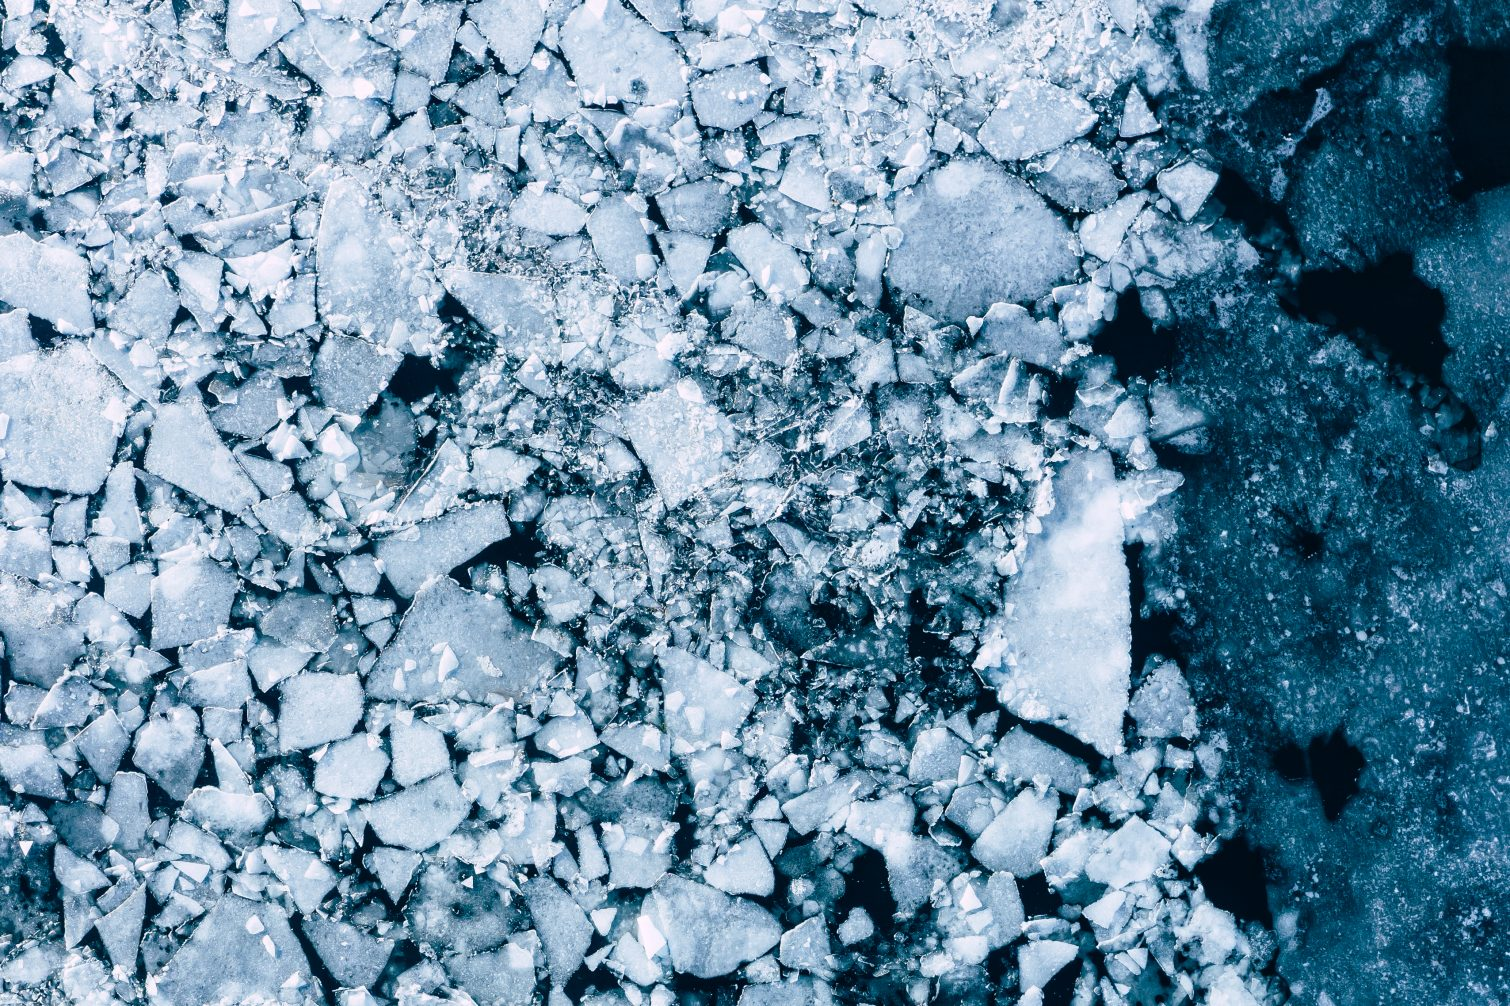 Glacier Lagoon with icebergs from above. Aerial View. Cracked Ice from drone view.